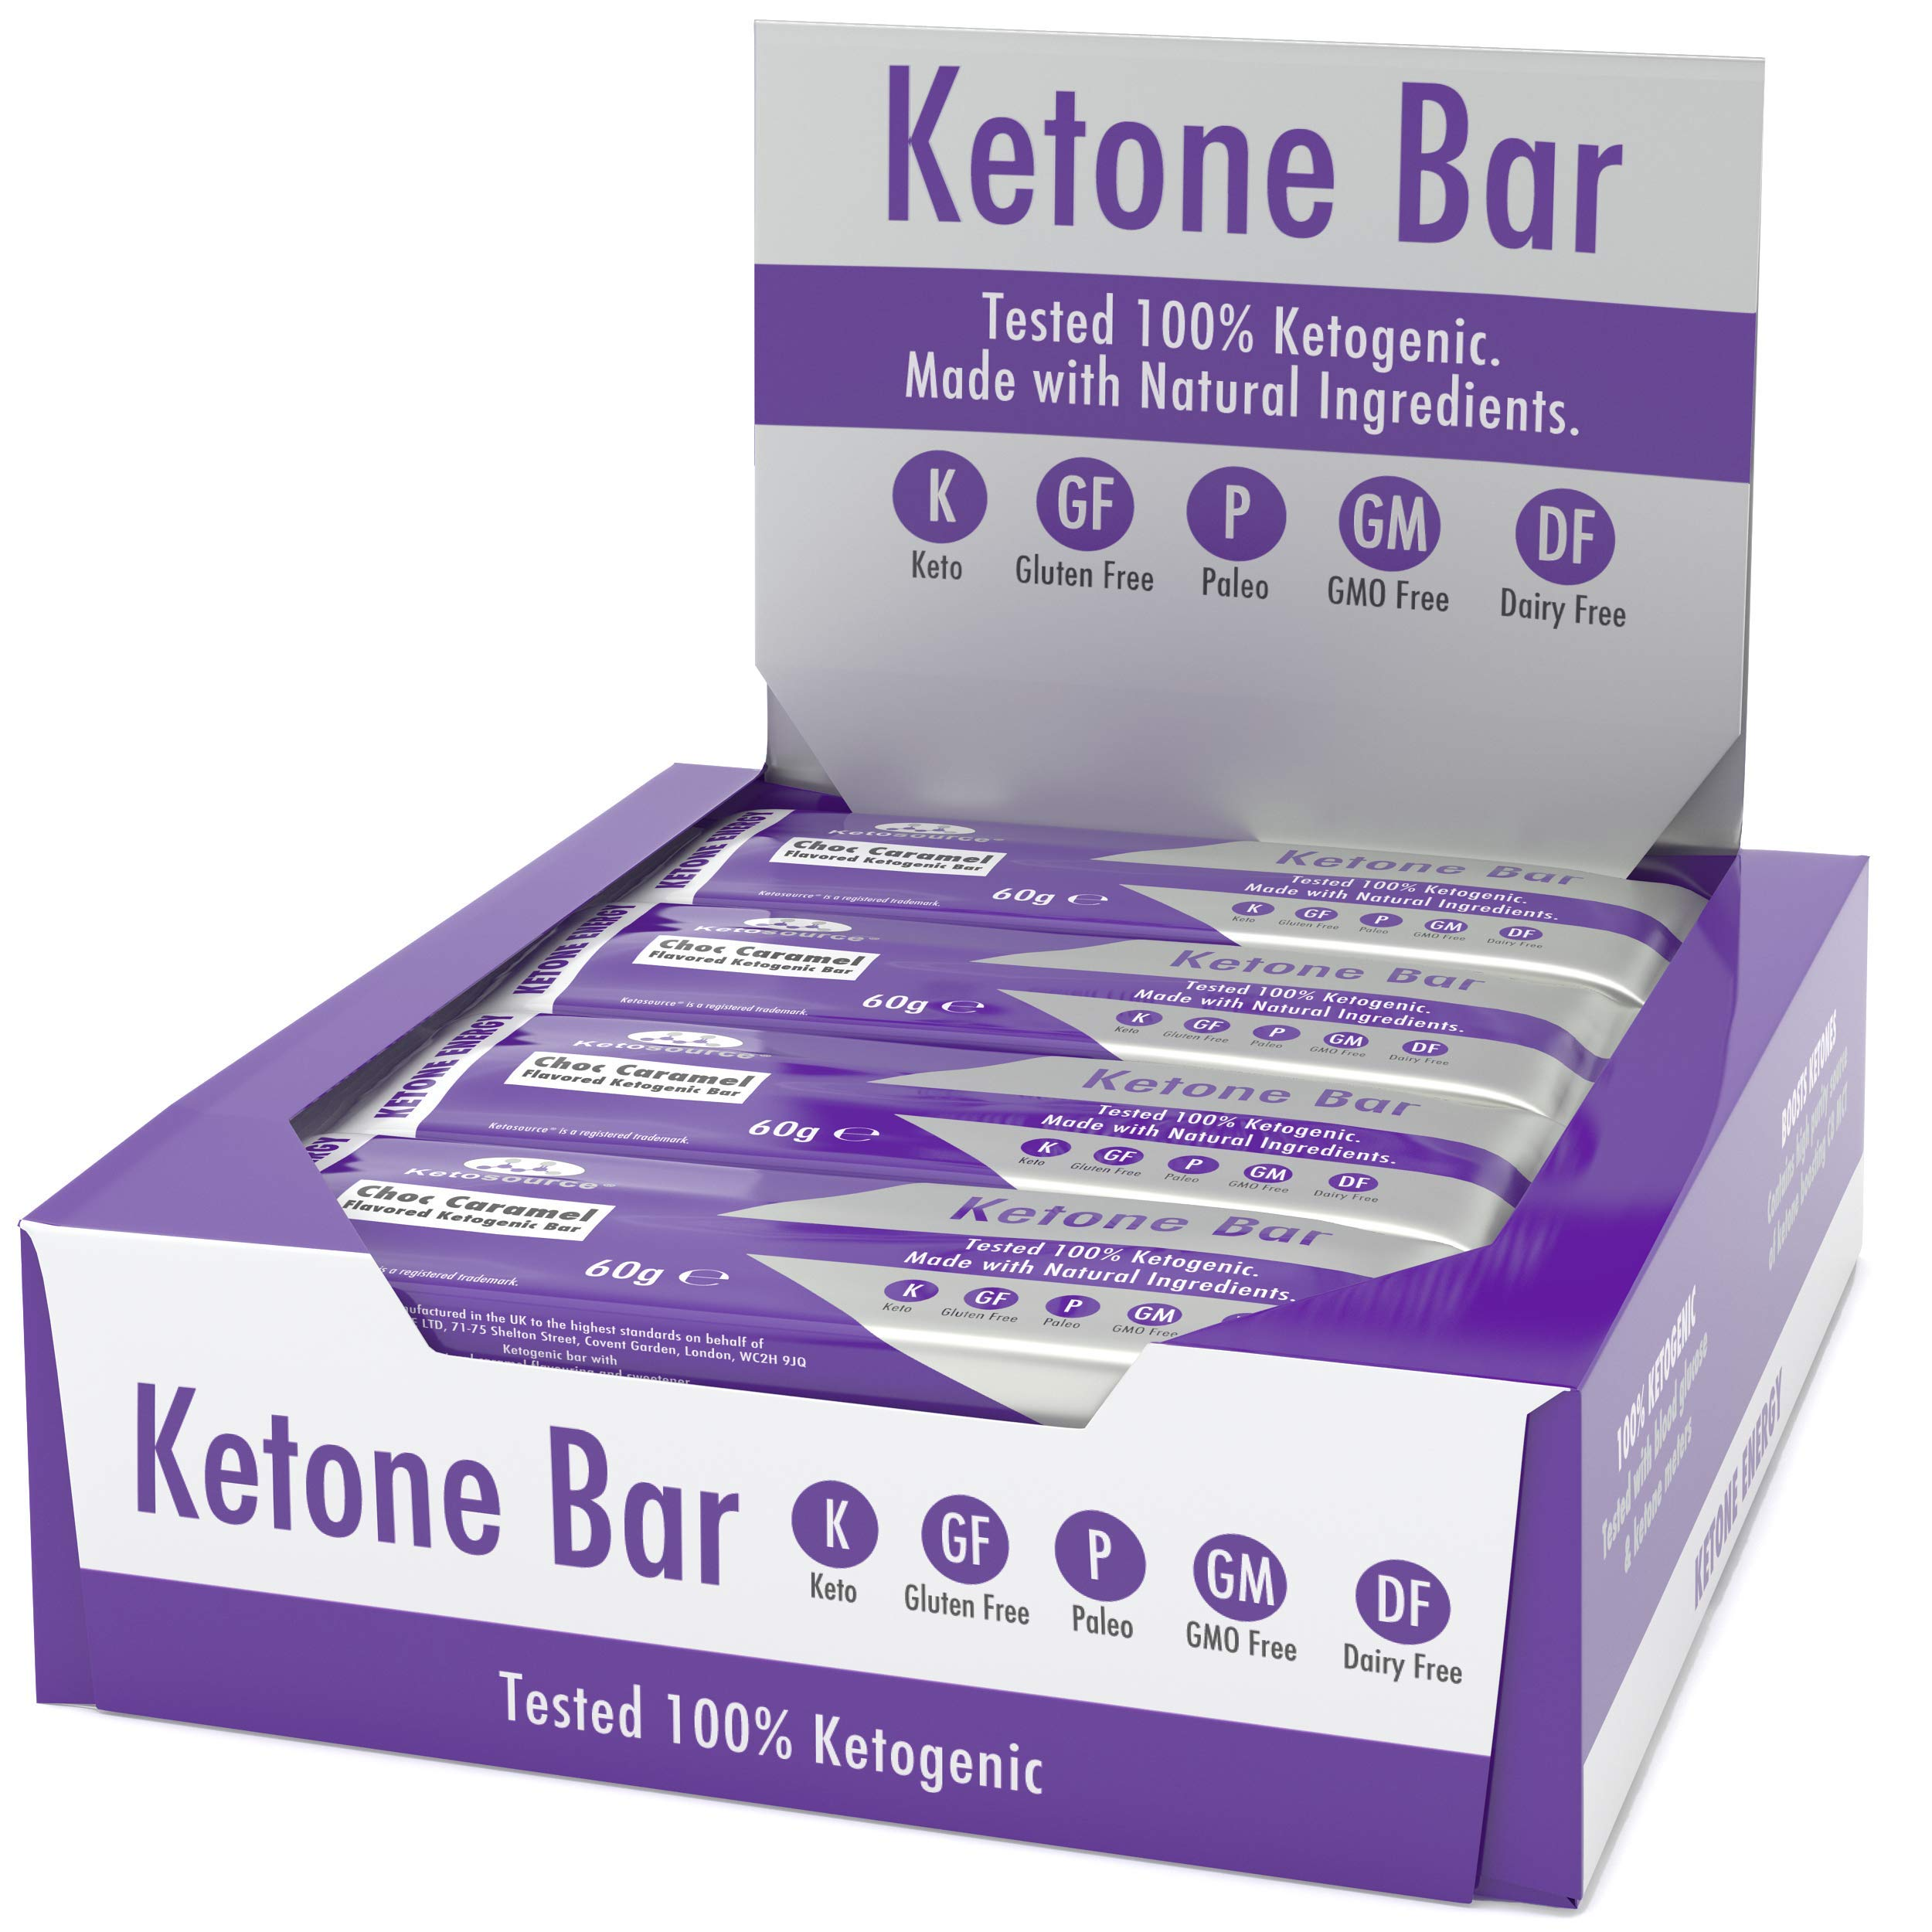 Ketone Bar (12 X 60g) | Keto Bar with All Natural Ingredients | Truly Ketogenic | Paleo & Keto Friendly | 3.1 Net Carbs per Bar | Gluten & Dairy Free | Choc Caramel Flavour | Ketosource® by Ketosource